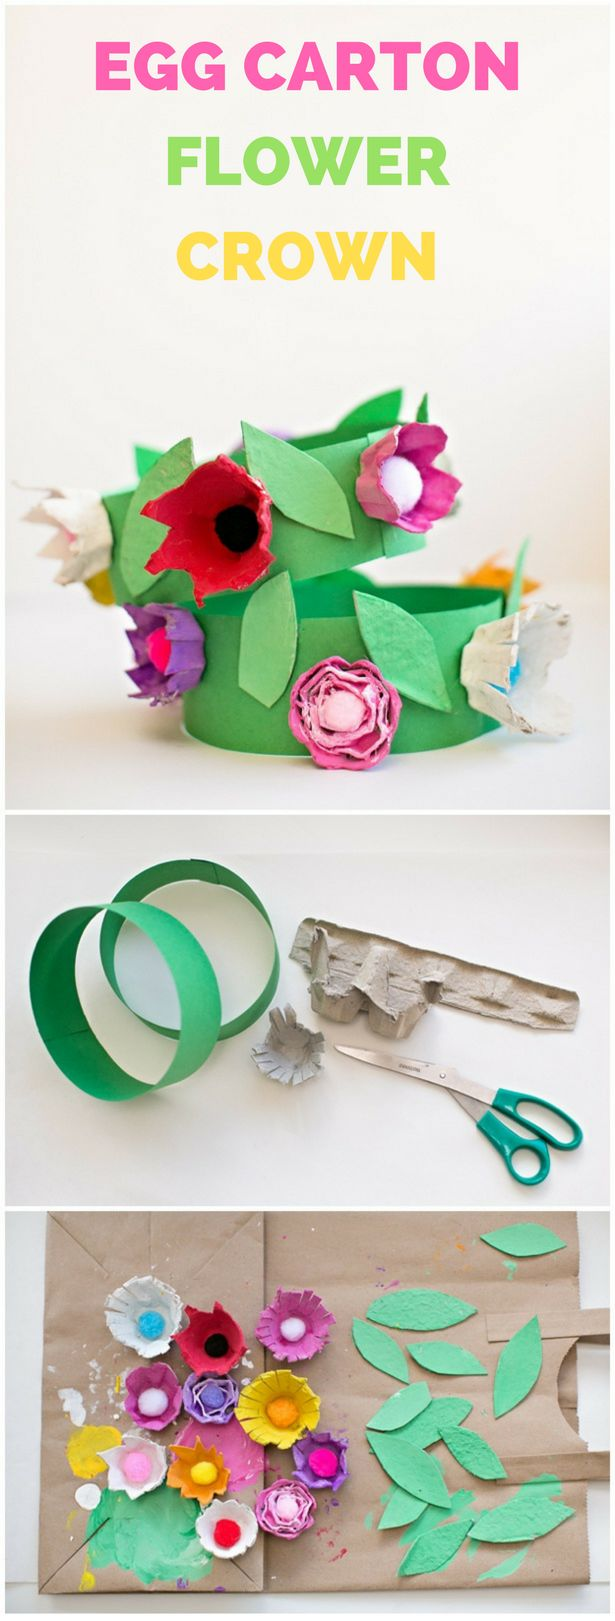 Recycled DIY Egg Carton Flower Crown. Cute way to celebrate spring with the kids!